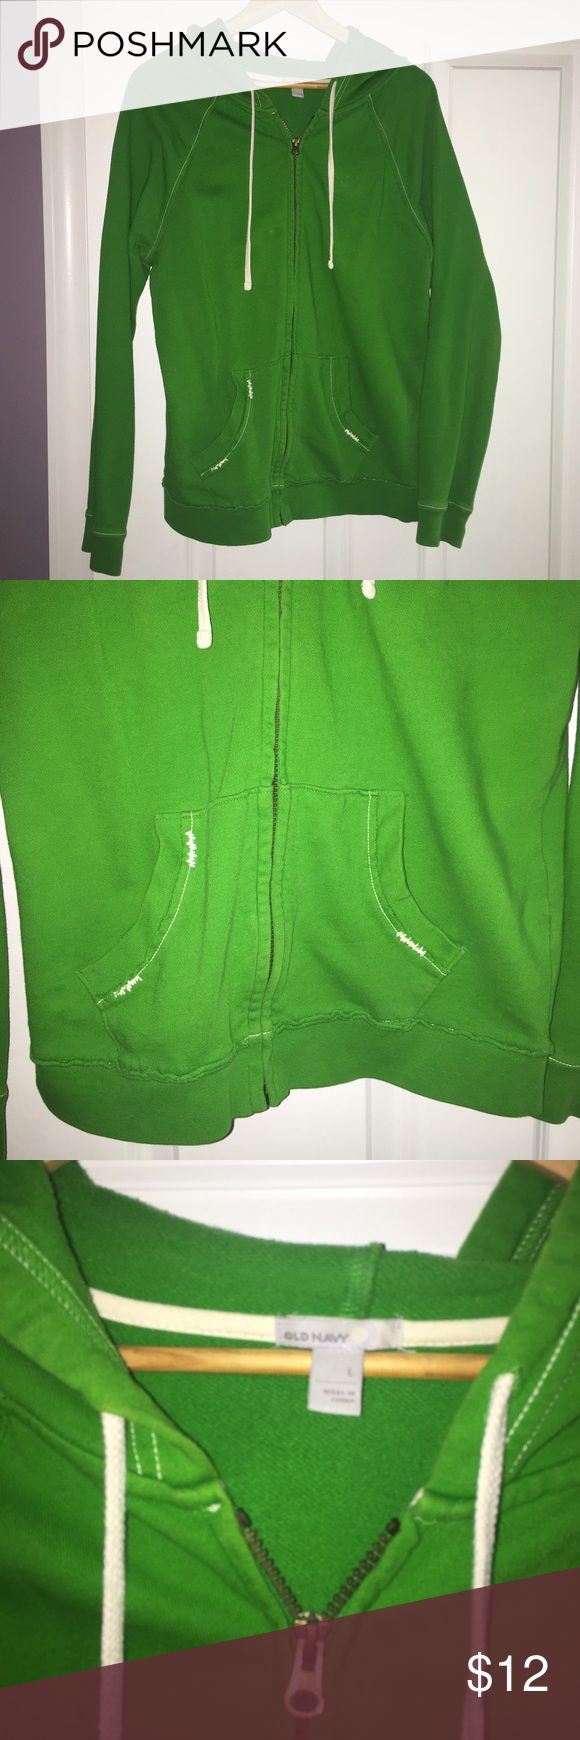 Bright green zip up! Bright green zip up hoodie! Very comfy! Great condition! Old Navy Tops Sweatshirts & Hoodies